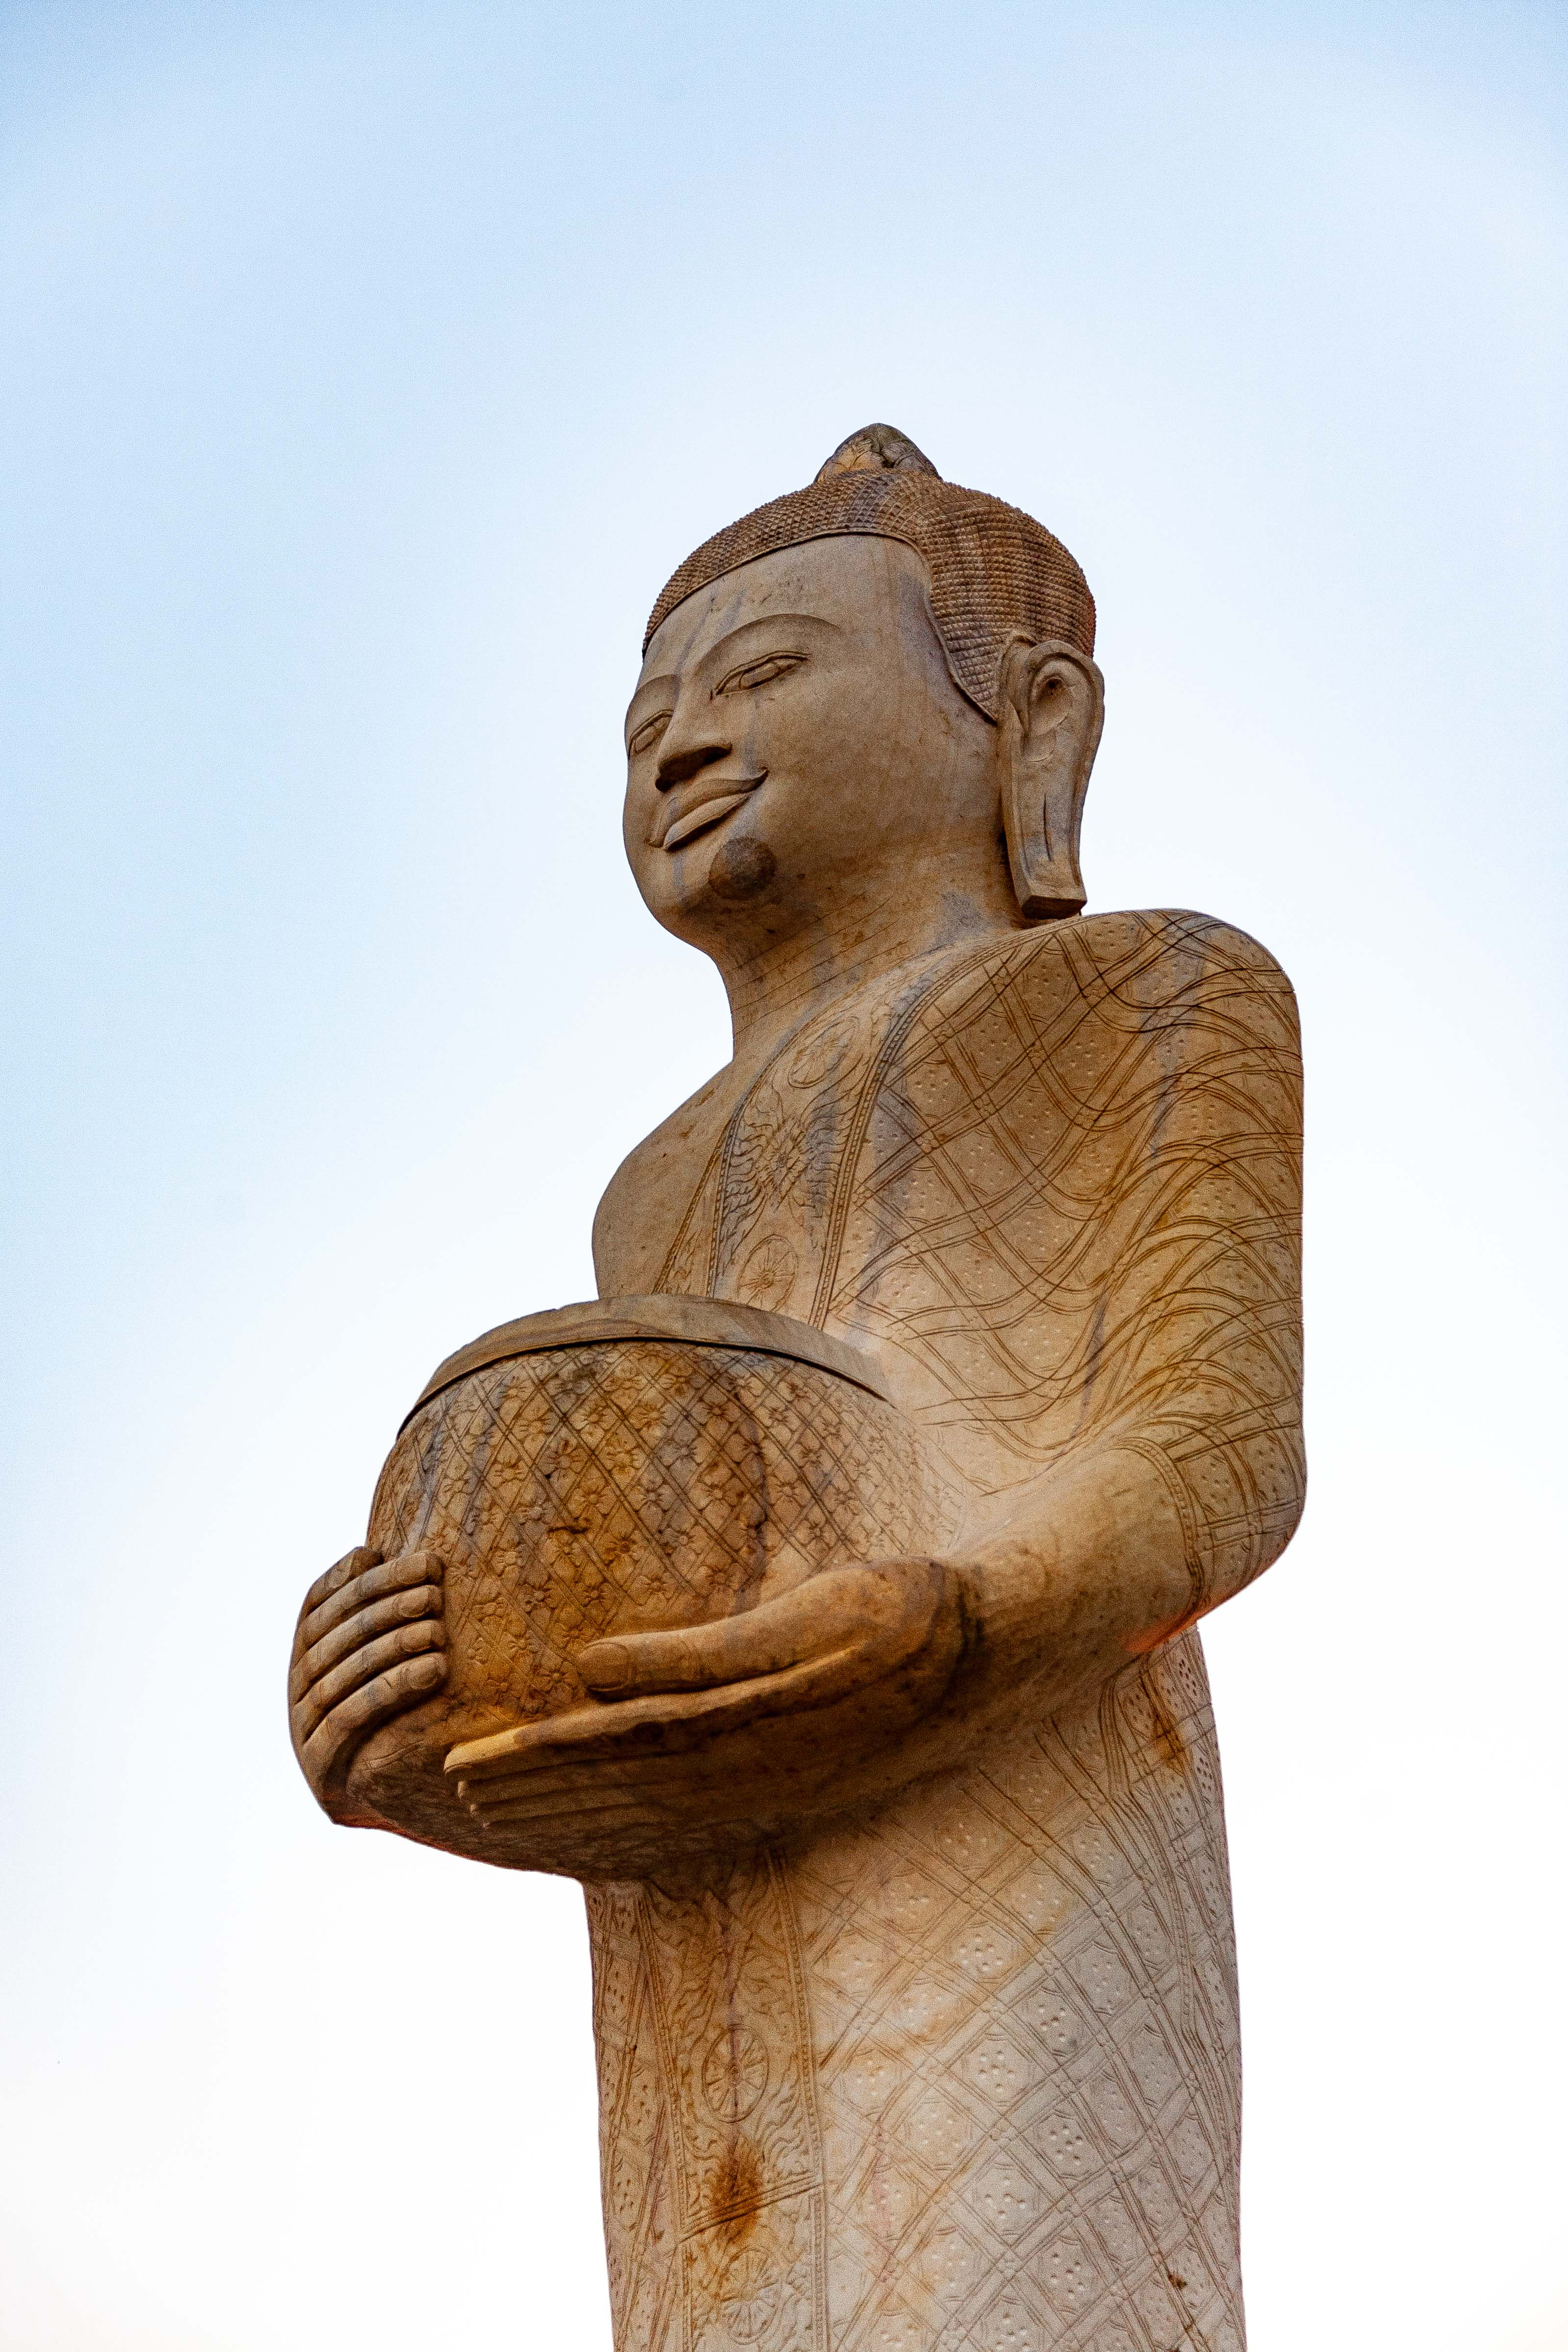 Cambodia, Kaoh Kong Prov, Country Statue, 2010, IMG 5088